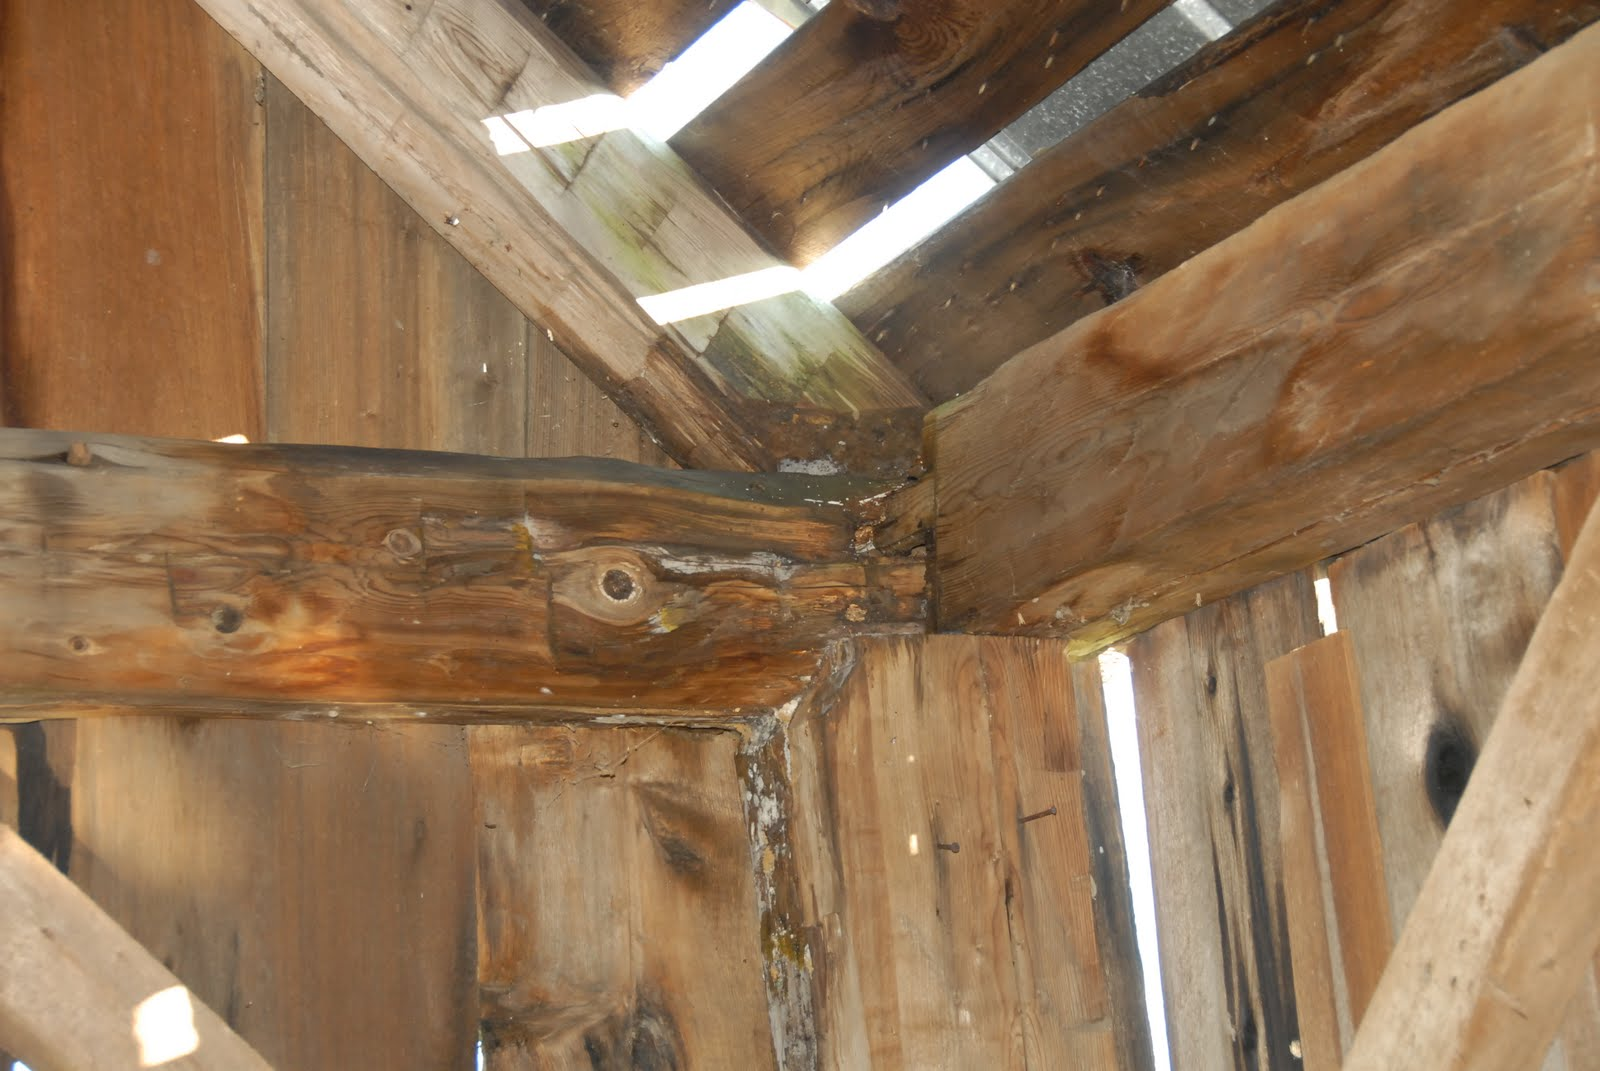 Water damage at the plate, tie, post and rafter is illuminated by light shining through the missing roofing.